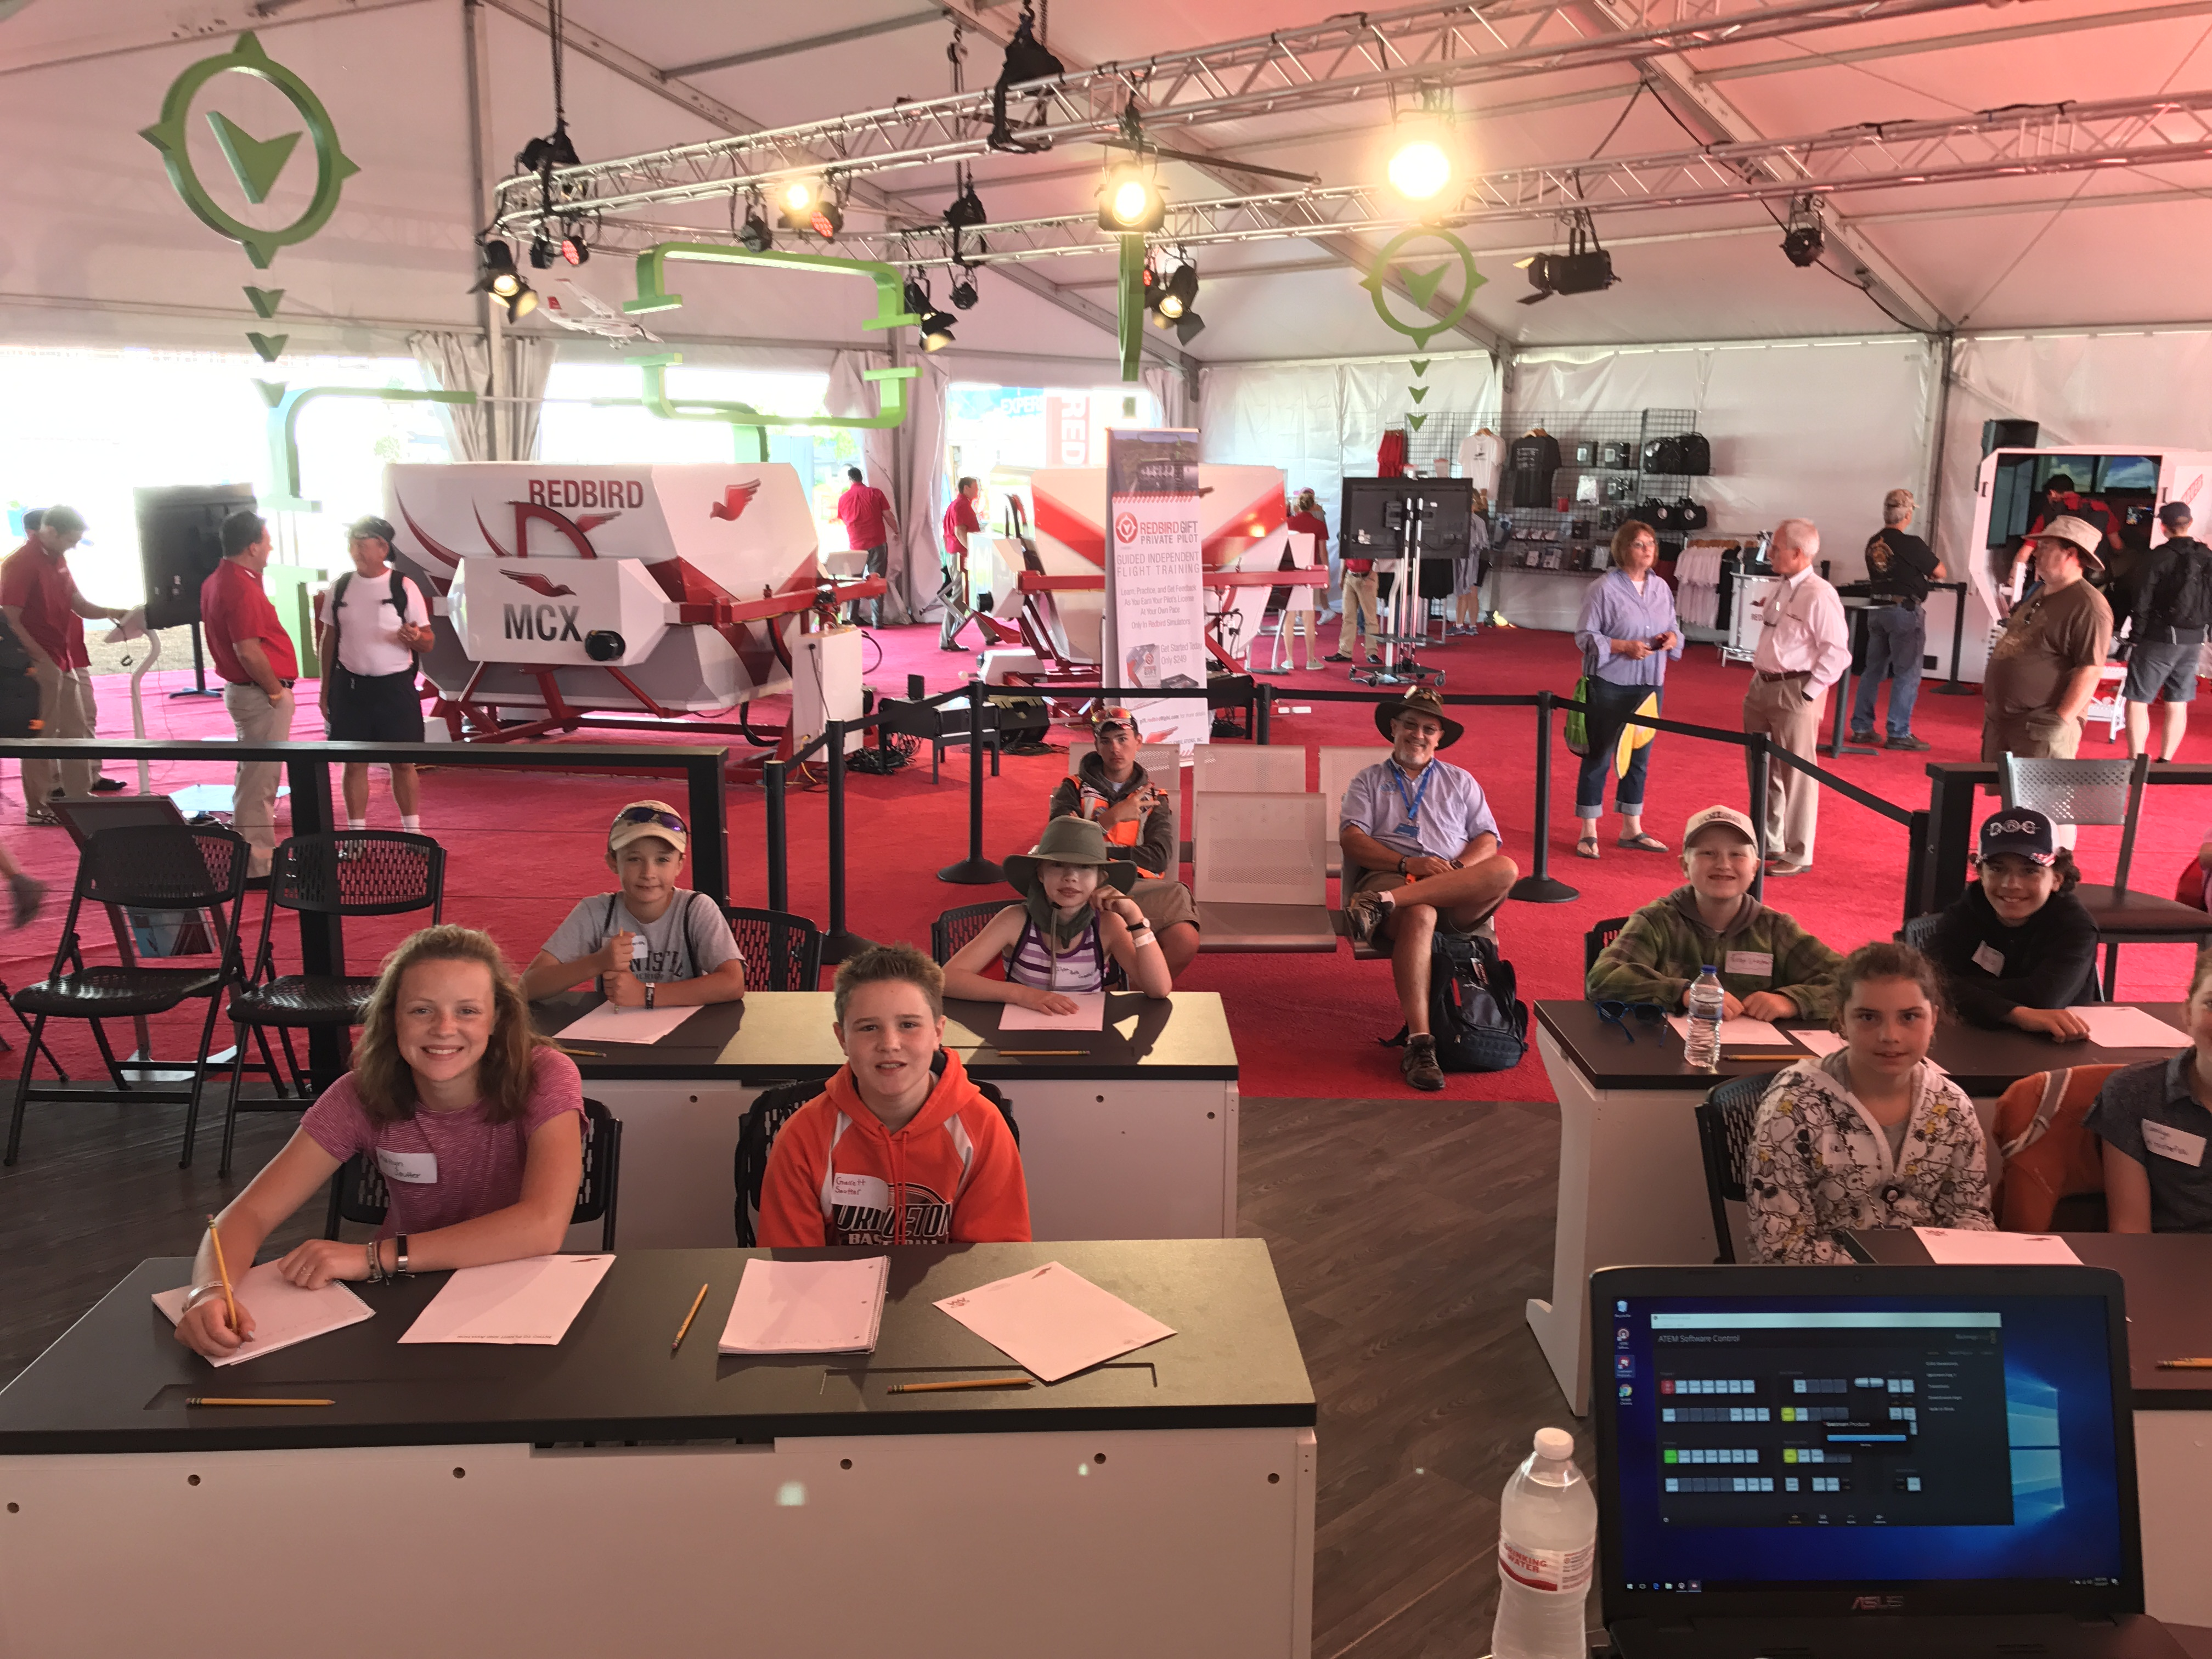 Redbird STEM Lab at AirVenture Oshkosh 2018